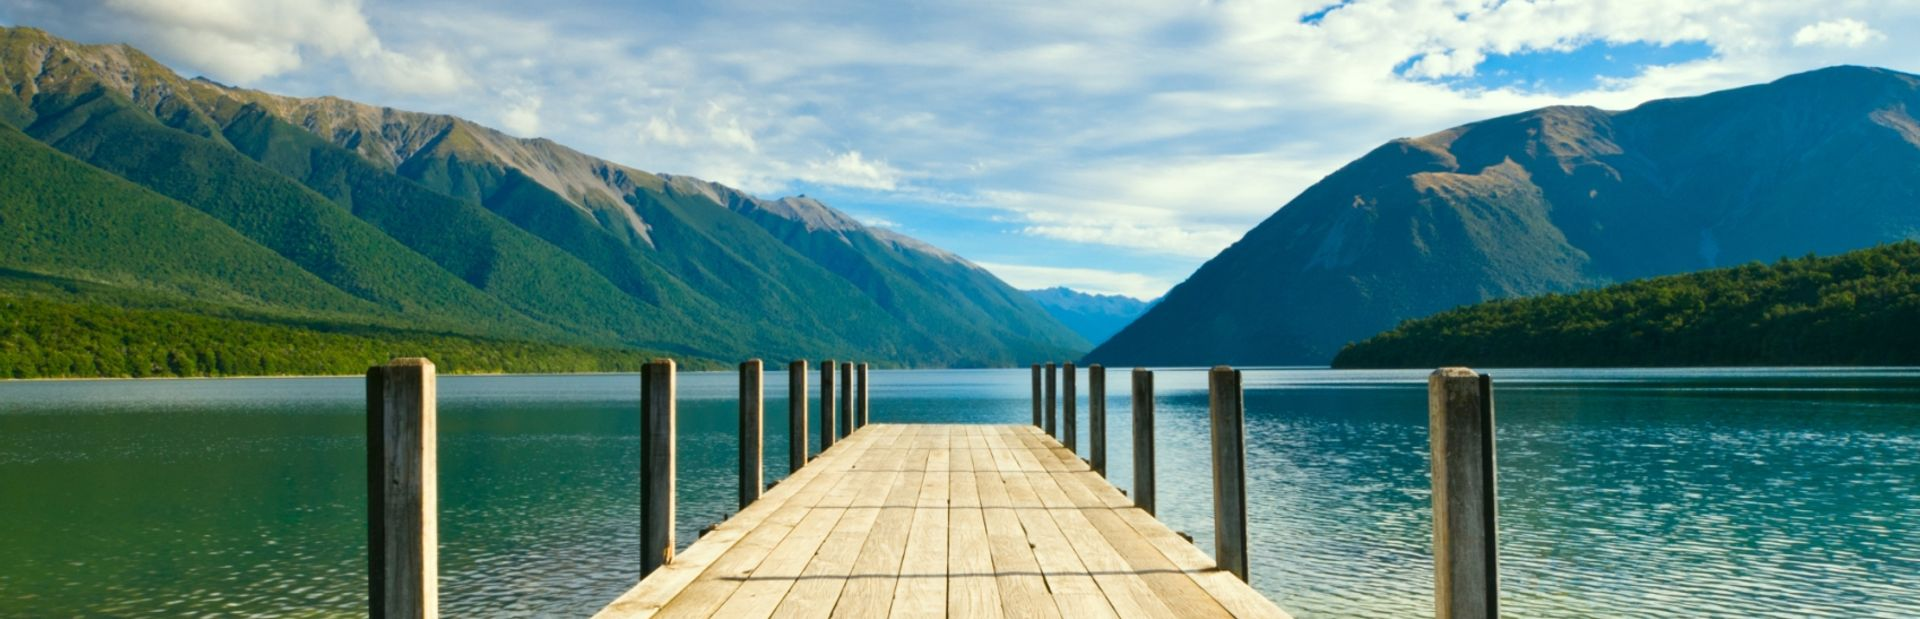 A Diving Paradise Awaits You on Your New Zealand Yacht Charter Vacation